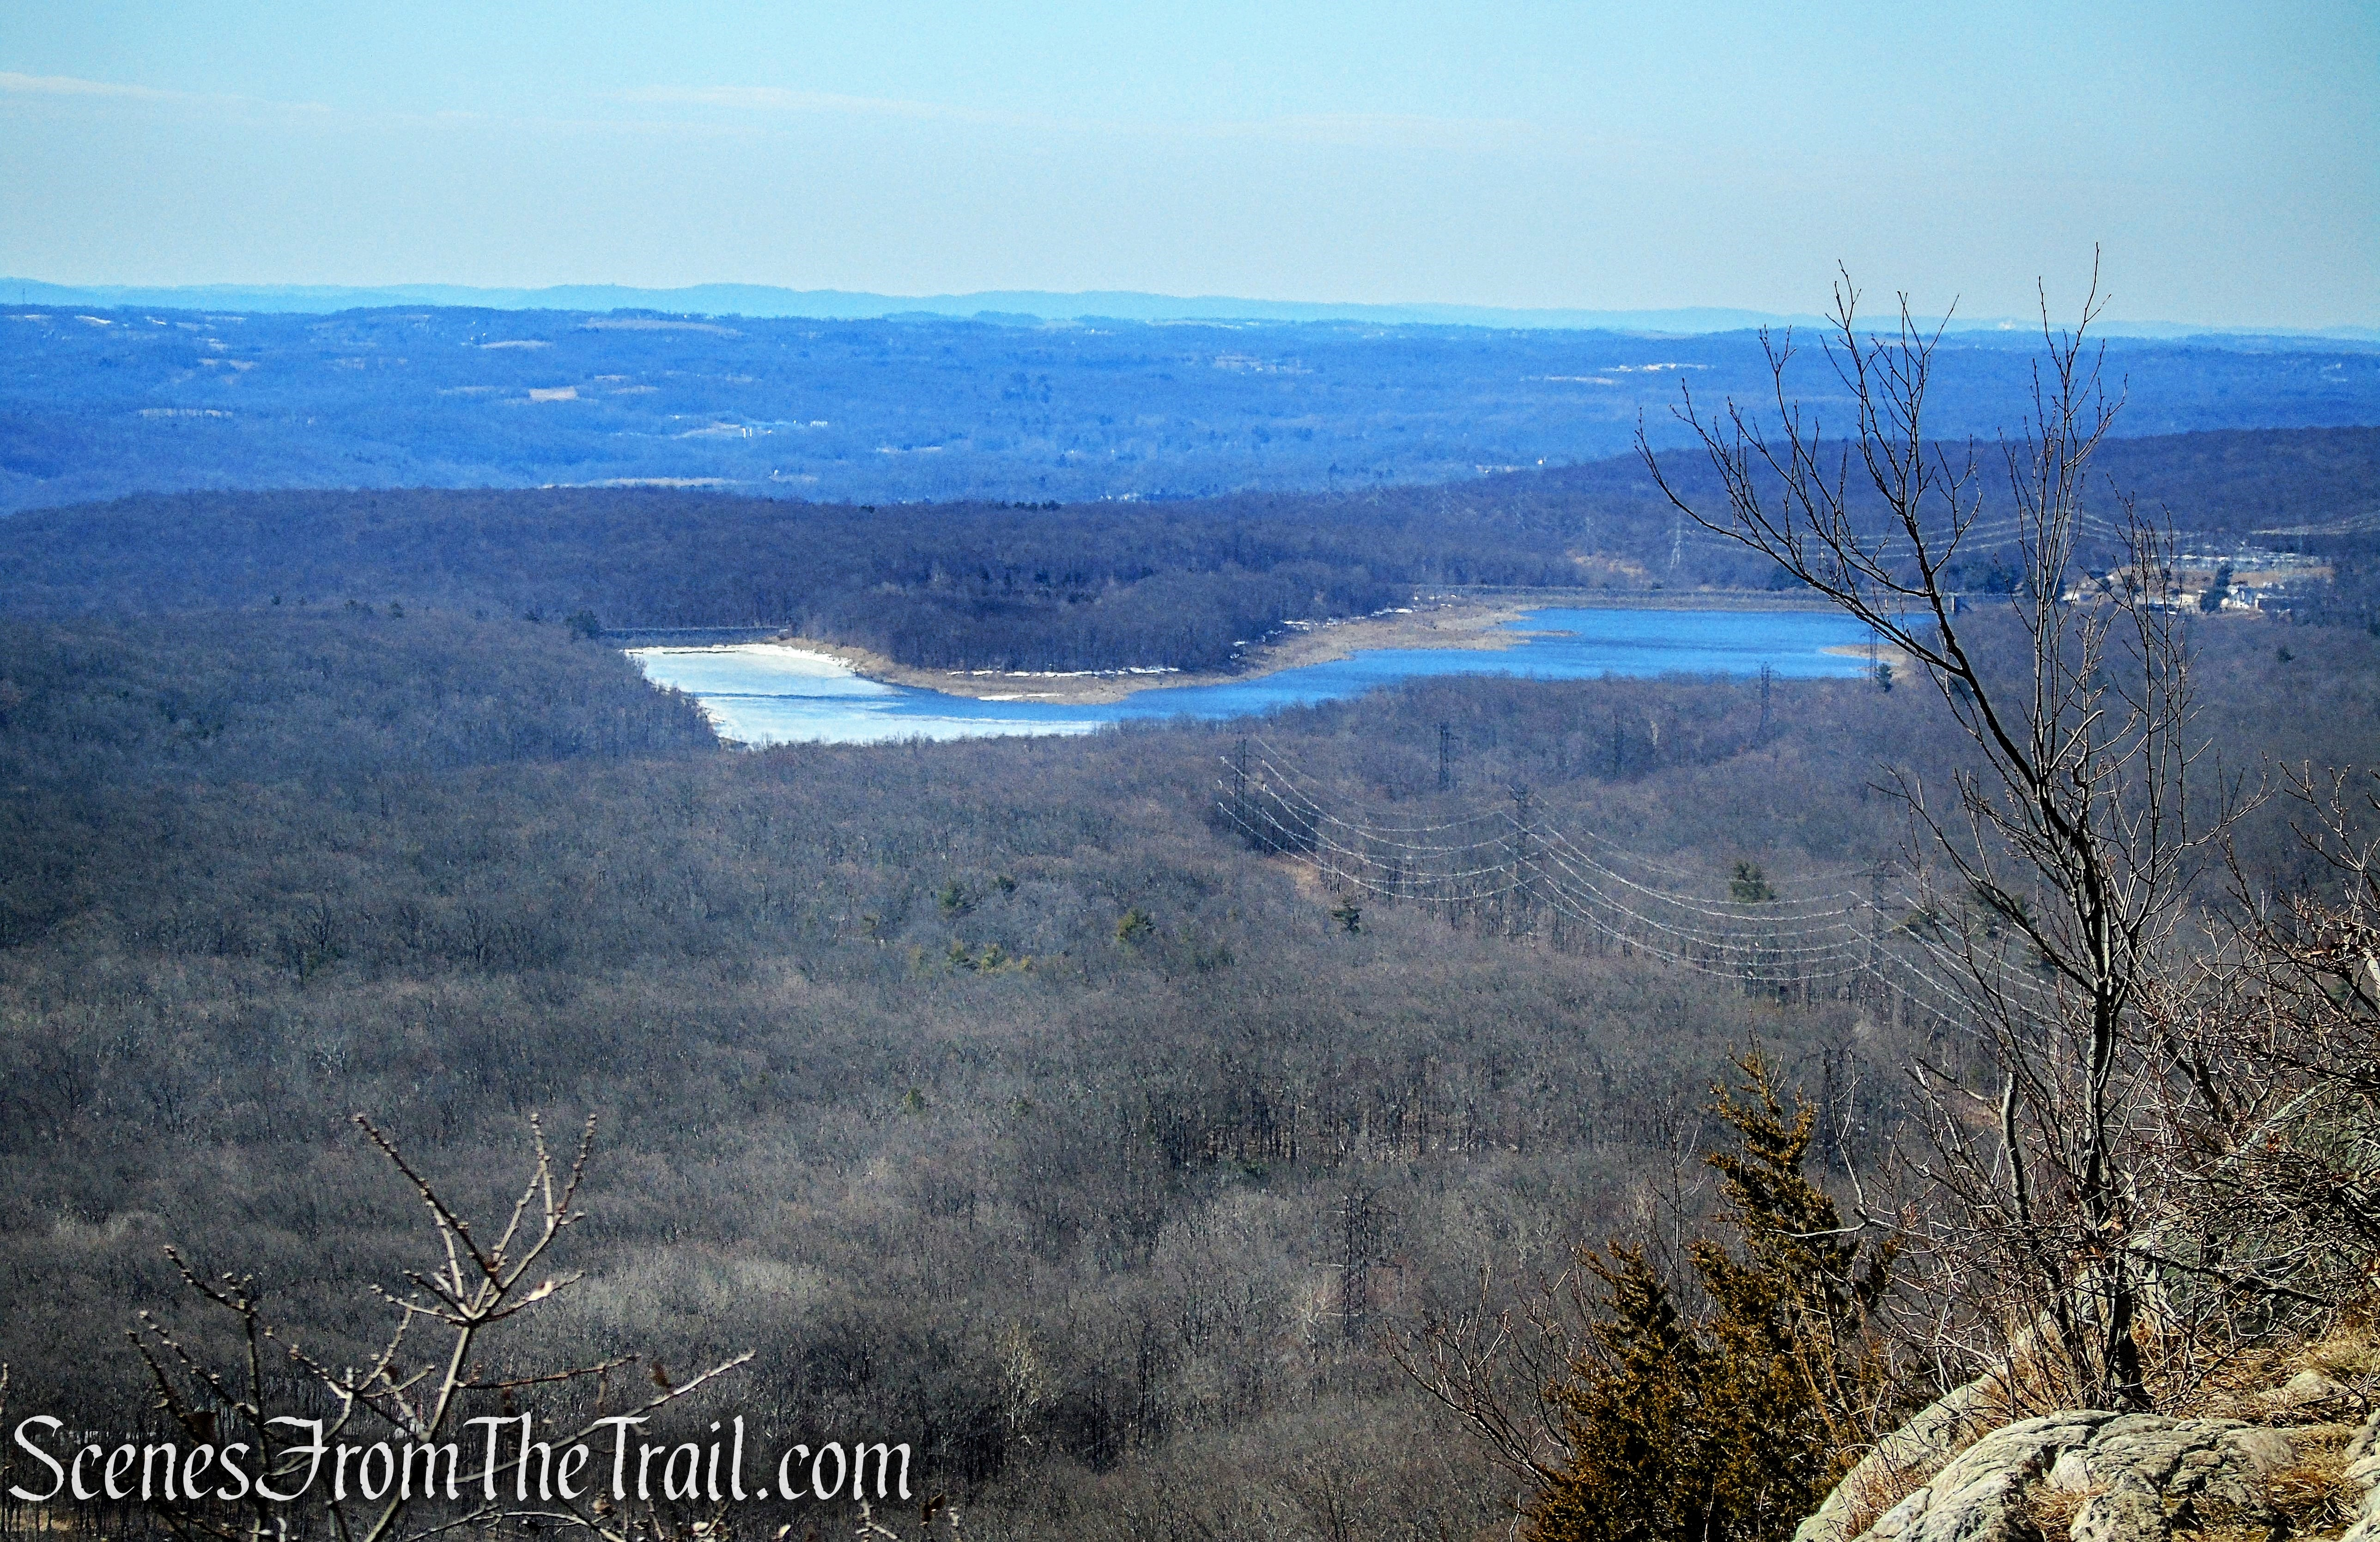 zoomed in view of Upper Yards Creek Reservoir from Appalachian Trail on the Kittatinny Ridge